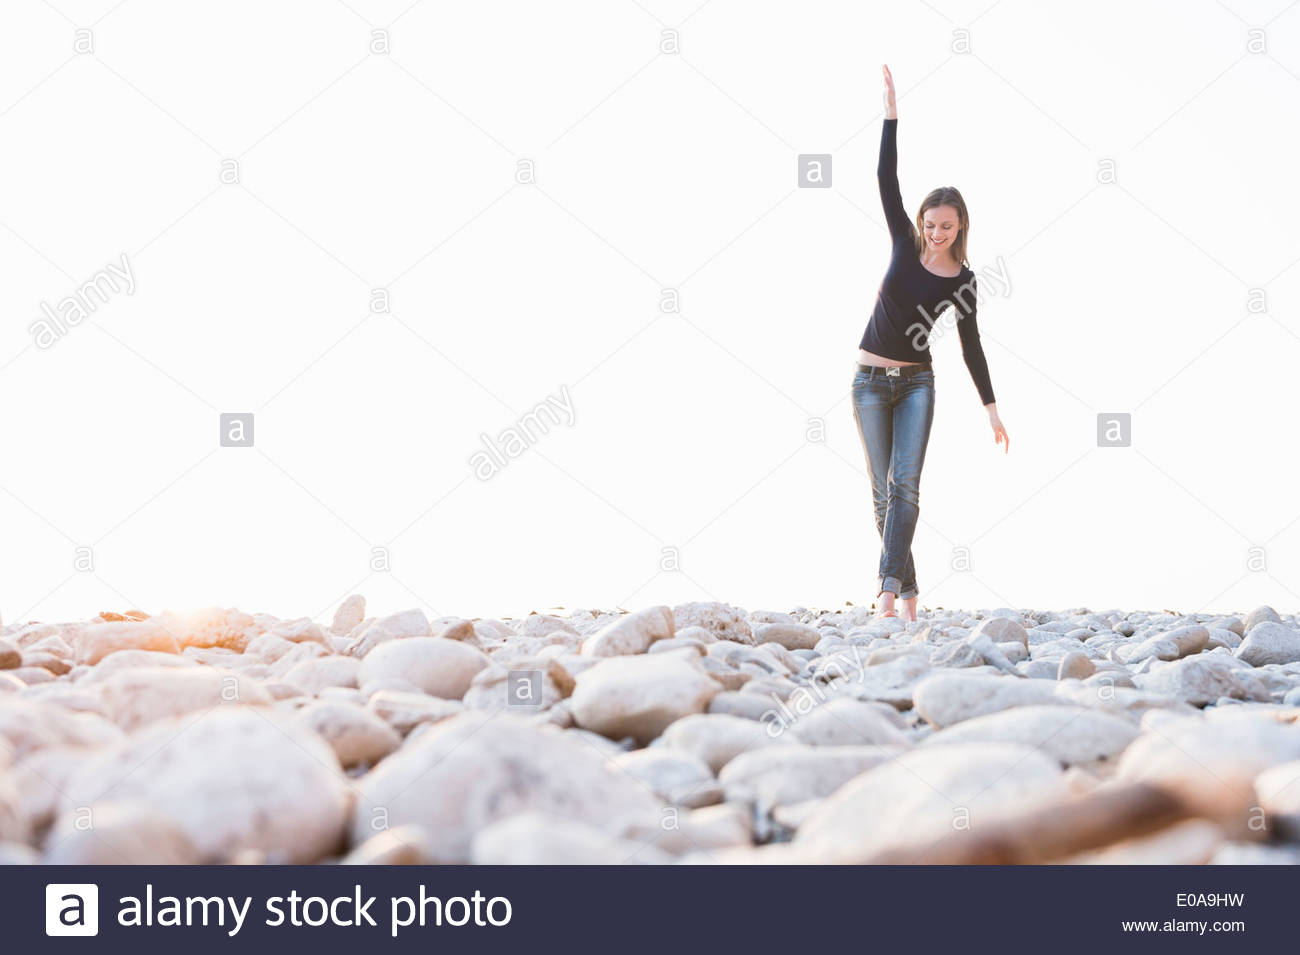 Young woman walking barefoot on stones at coast - Stock Image